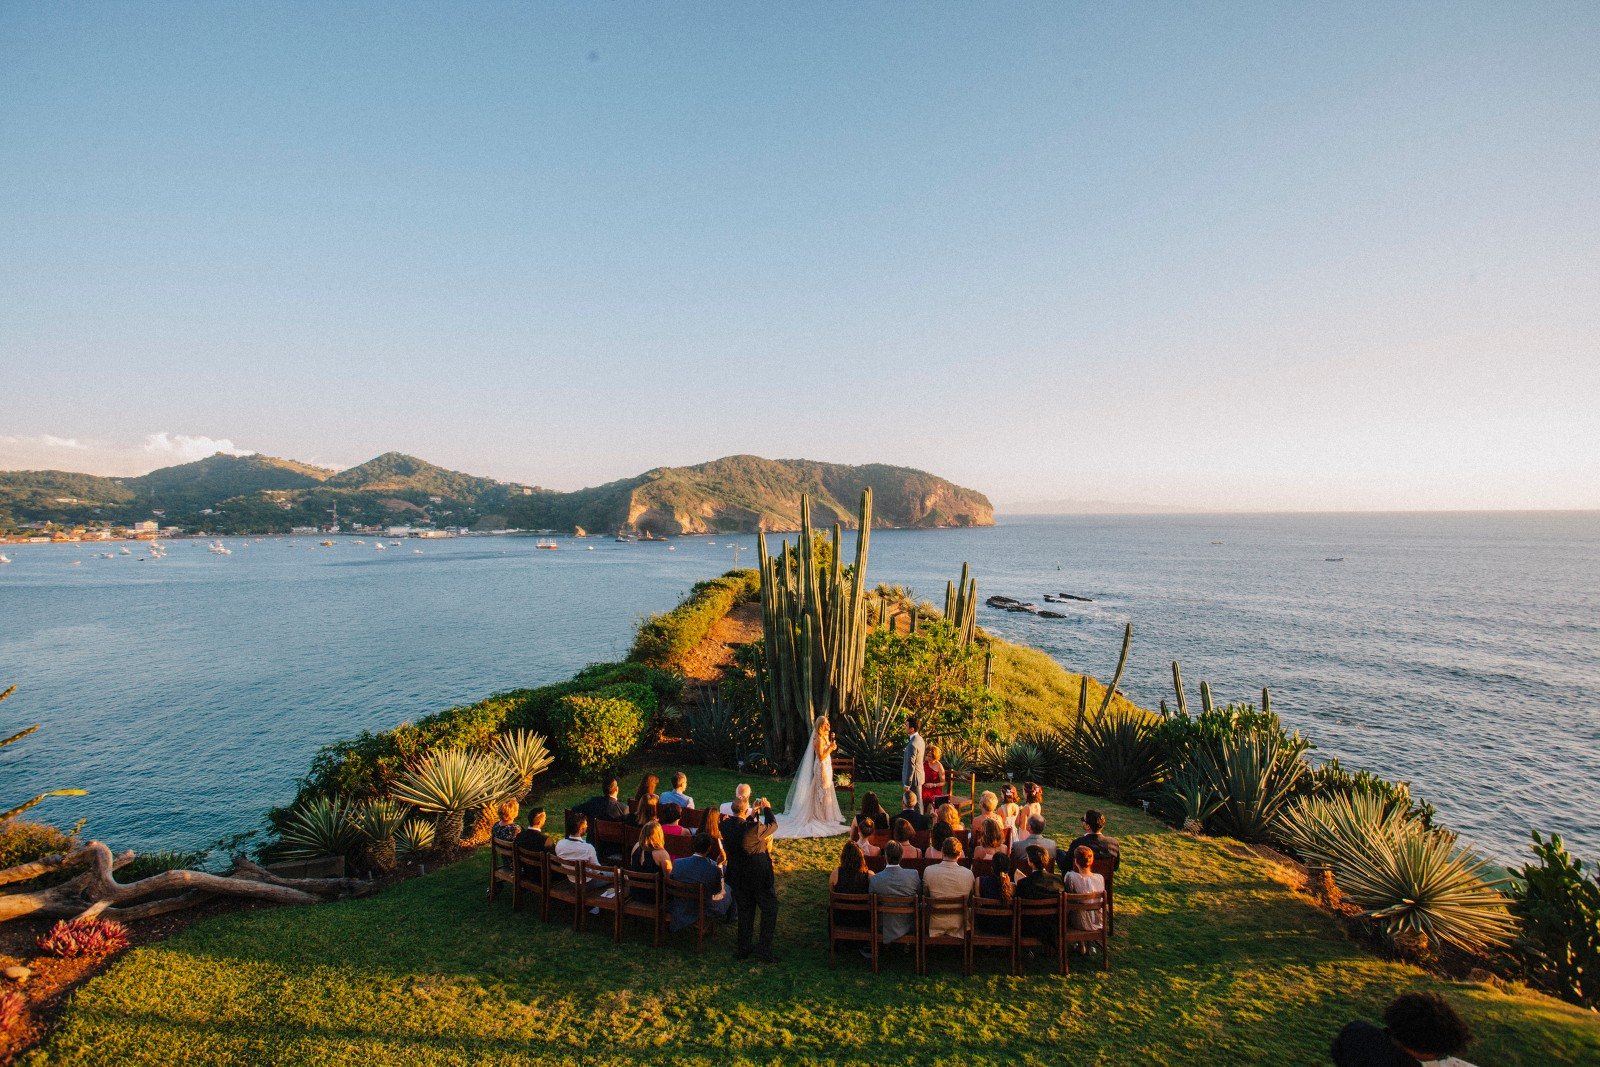 Best wedding Beach Venues in Nicaragua and Costa Rica. San Juan bay.